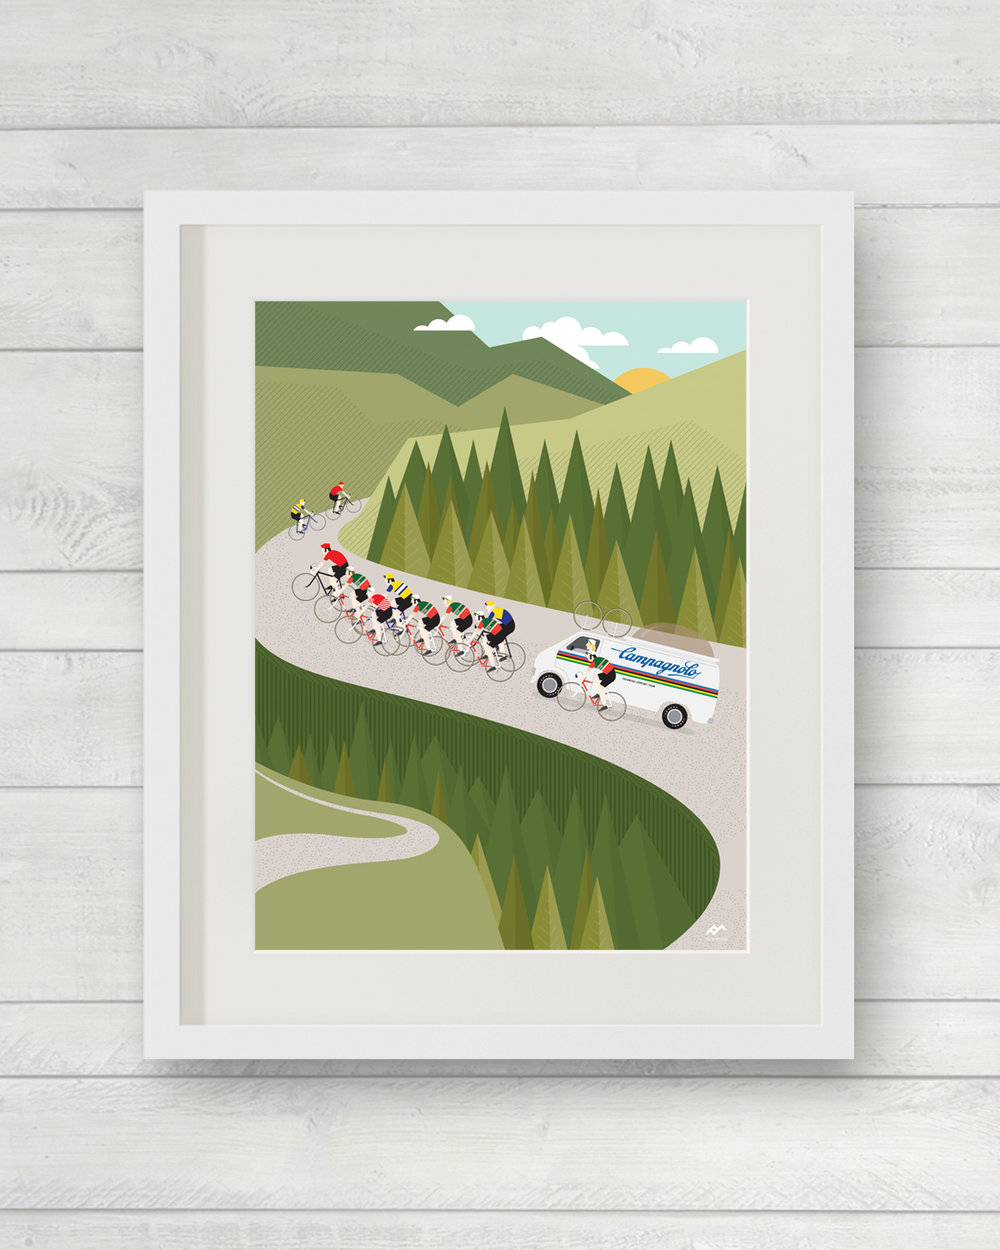 Mountains - The Climb | ©veloposters